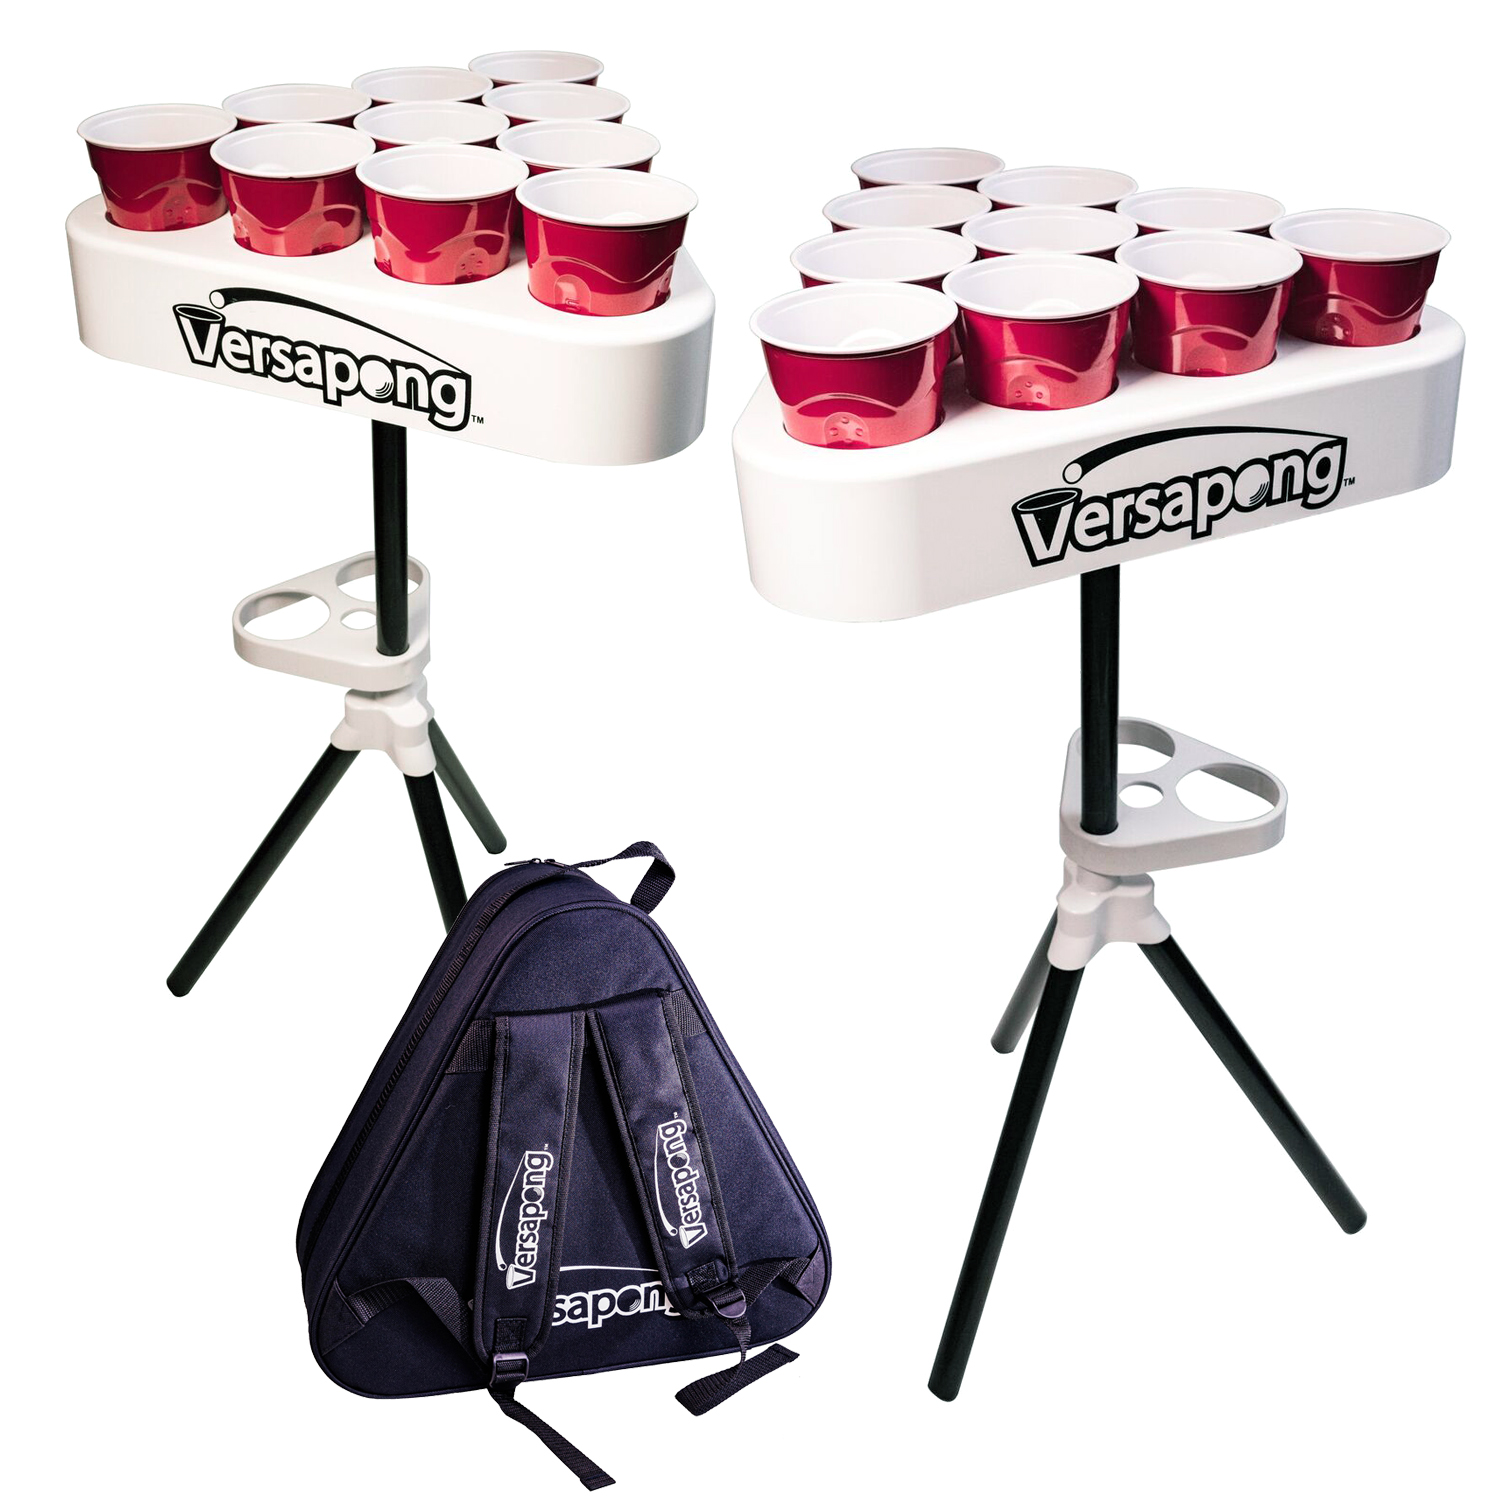 Versapong Portable Beer Pong Table and Tailgate Game